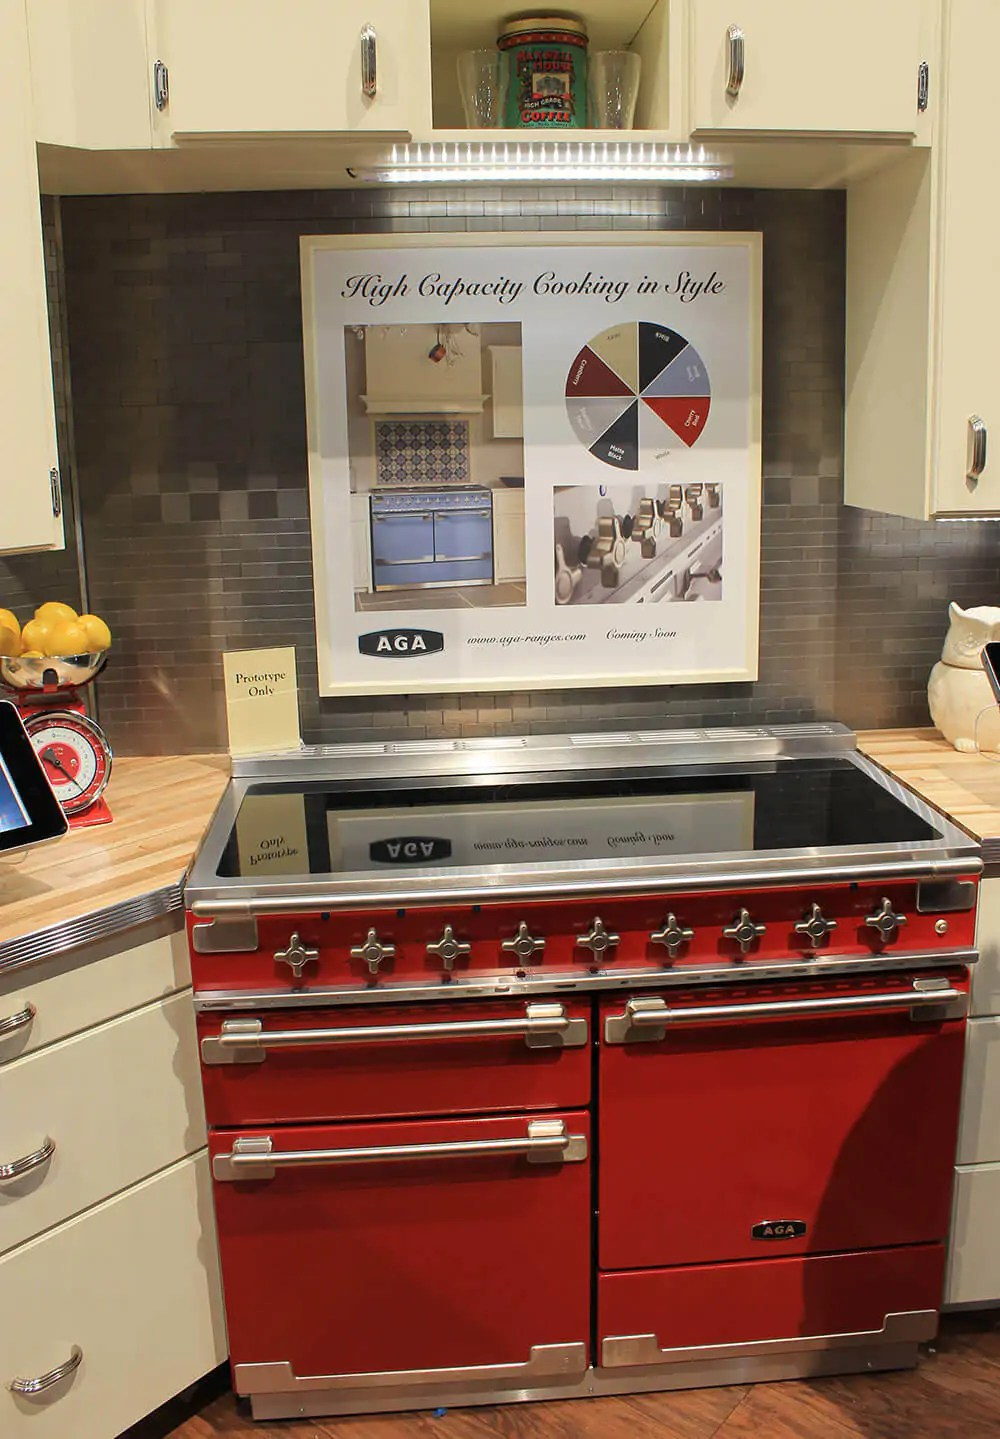 Kitchen Island With Seating On Both Sides Aga Colorful Ranges And A Retro Kitchen At Kbis - Retro